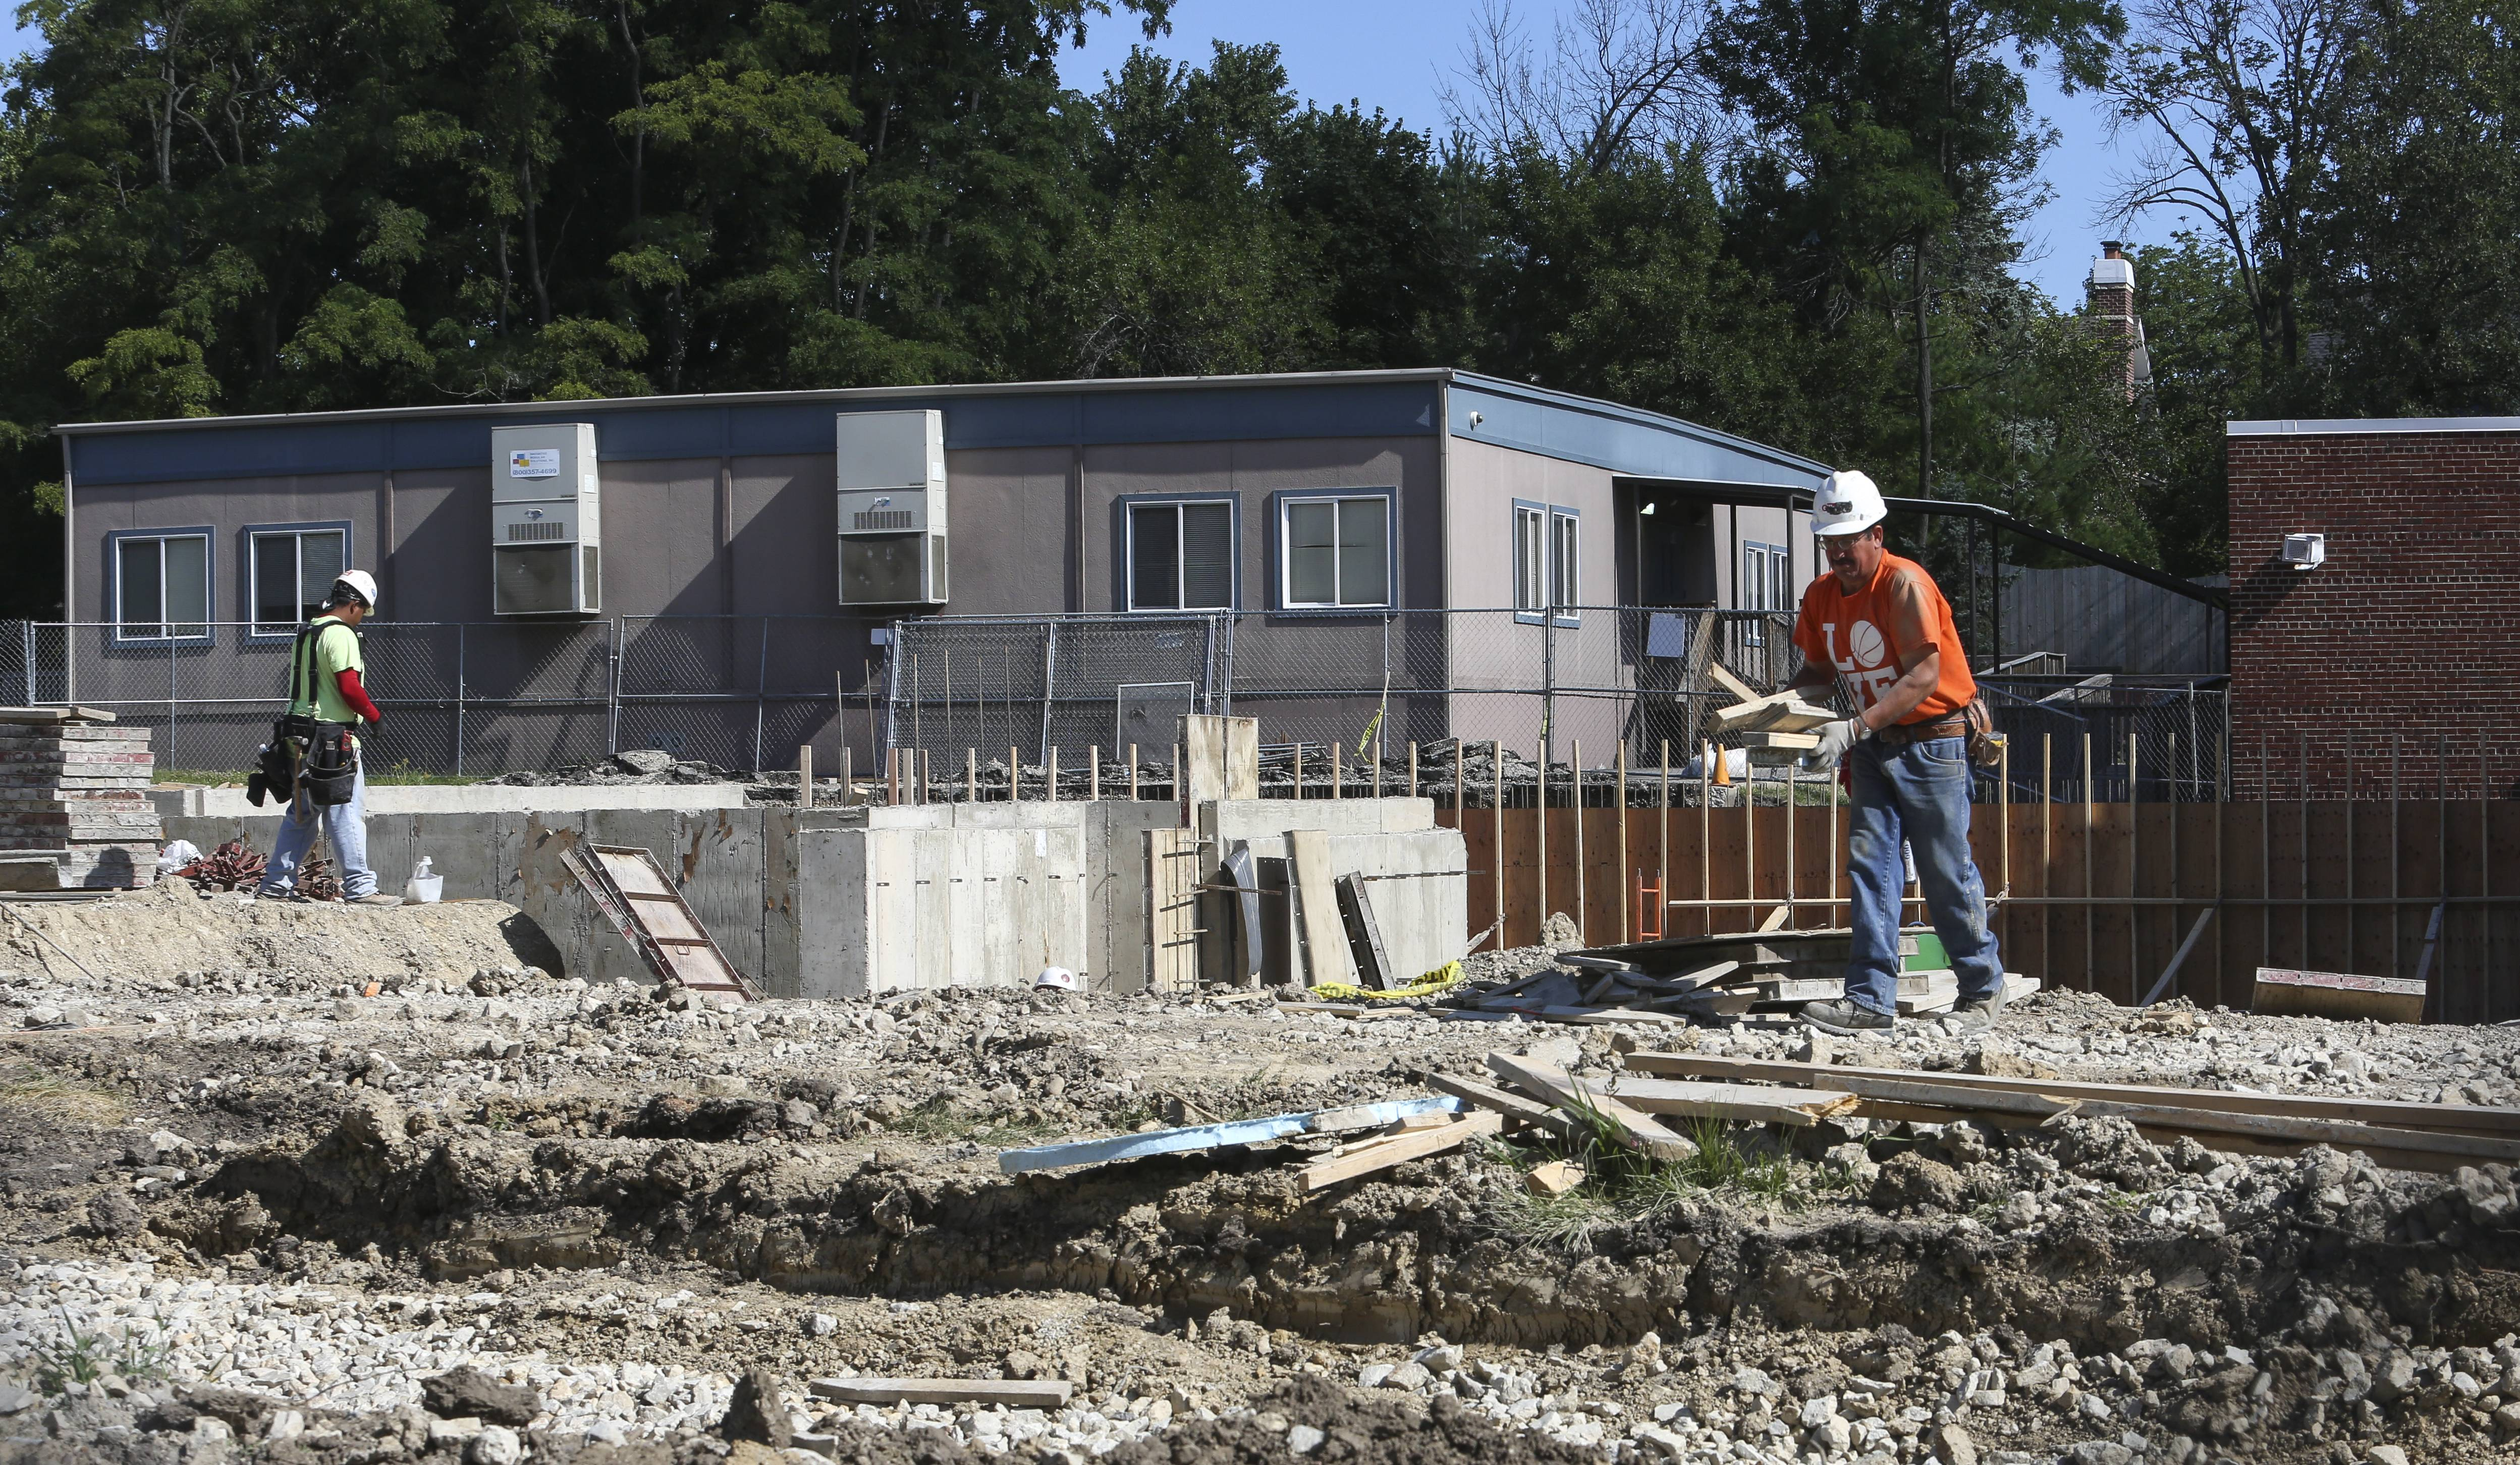 Construction crews work Thursday on a building addition at Franklin Elementary School in Glen Ellyn District 41. Franklin is one of four district schools that will get new classrooms as part of a two-year, $15 million project.